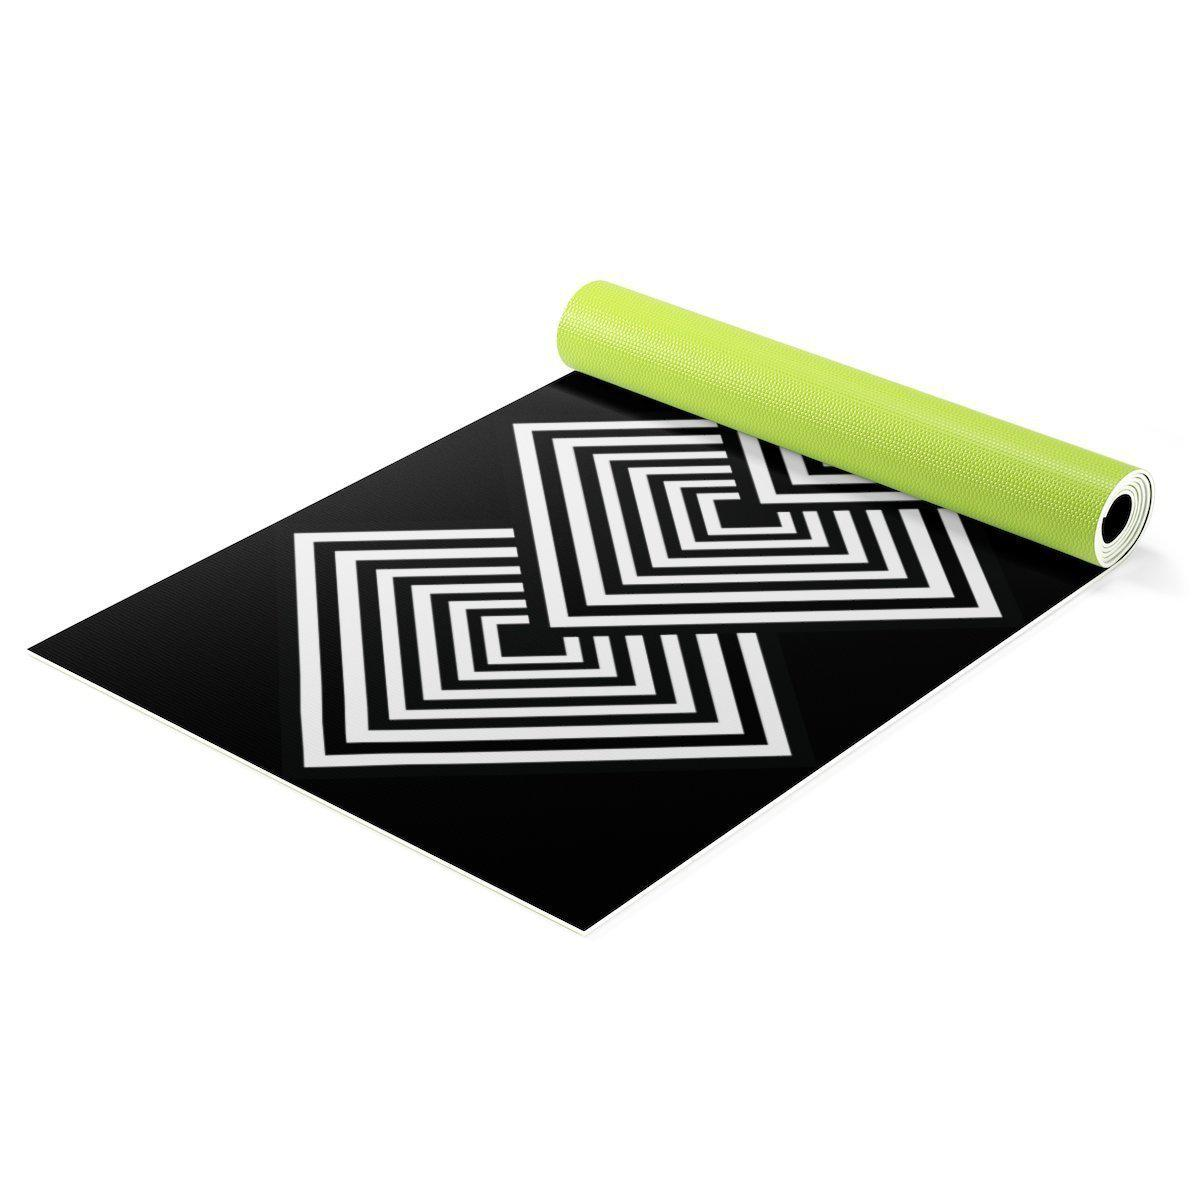 Contemporary Yoga mat-Home - Gym Equipment - Yoga mats-Maison d'Elite-One size-Très Elite